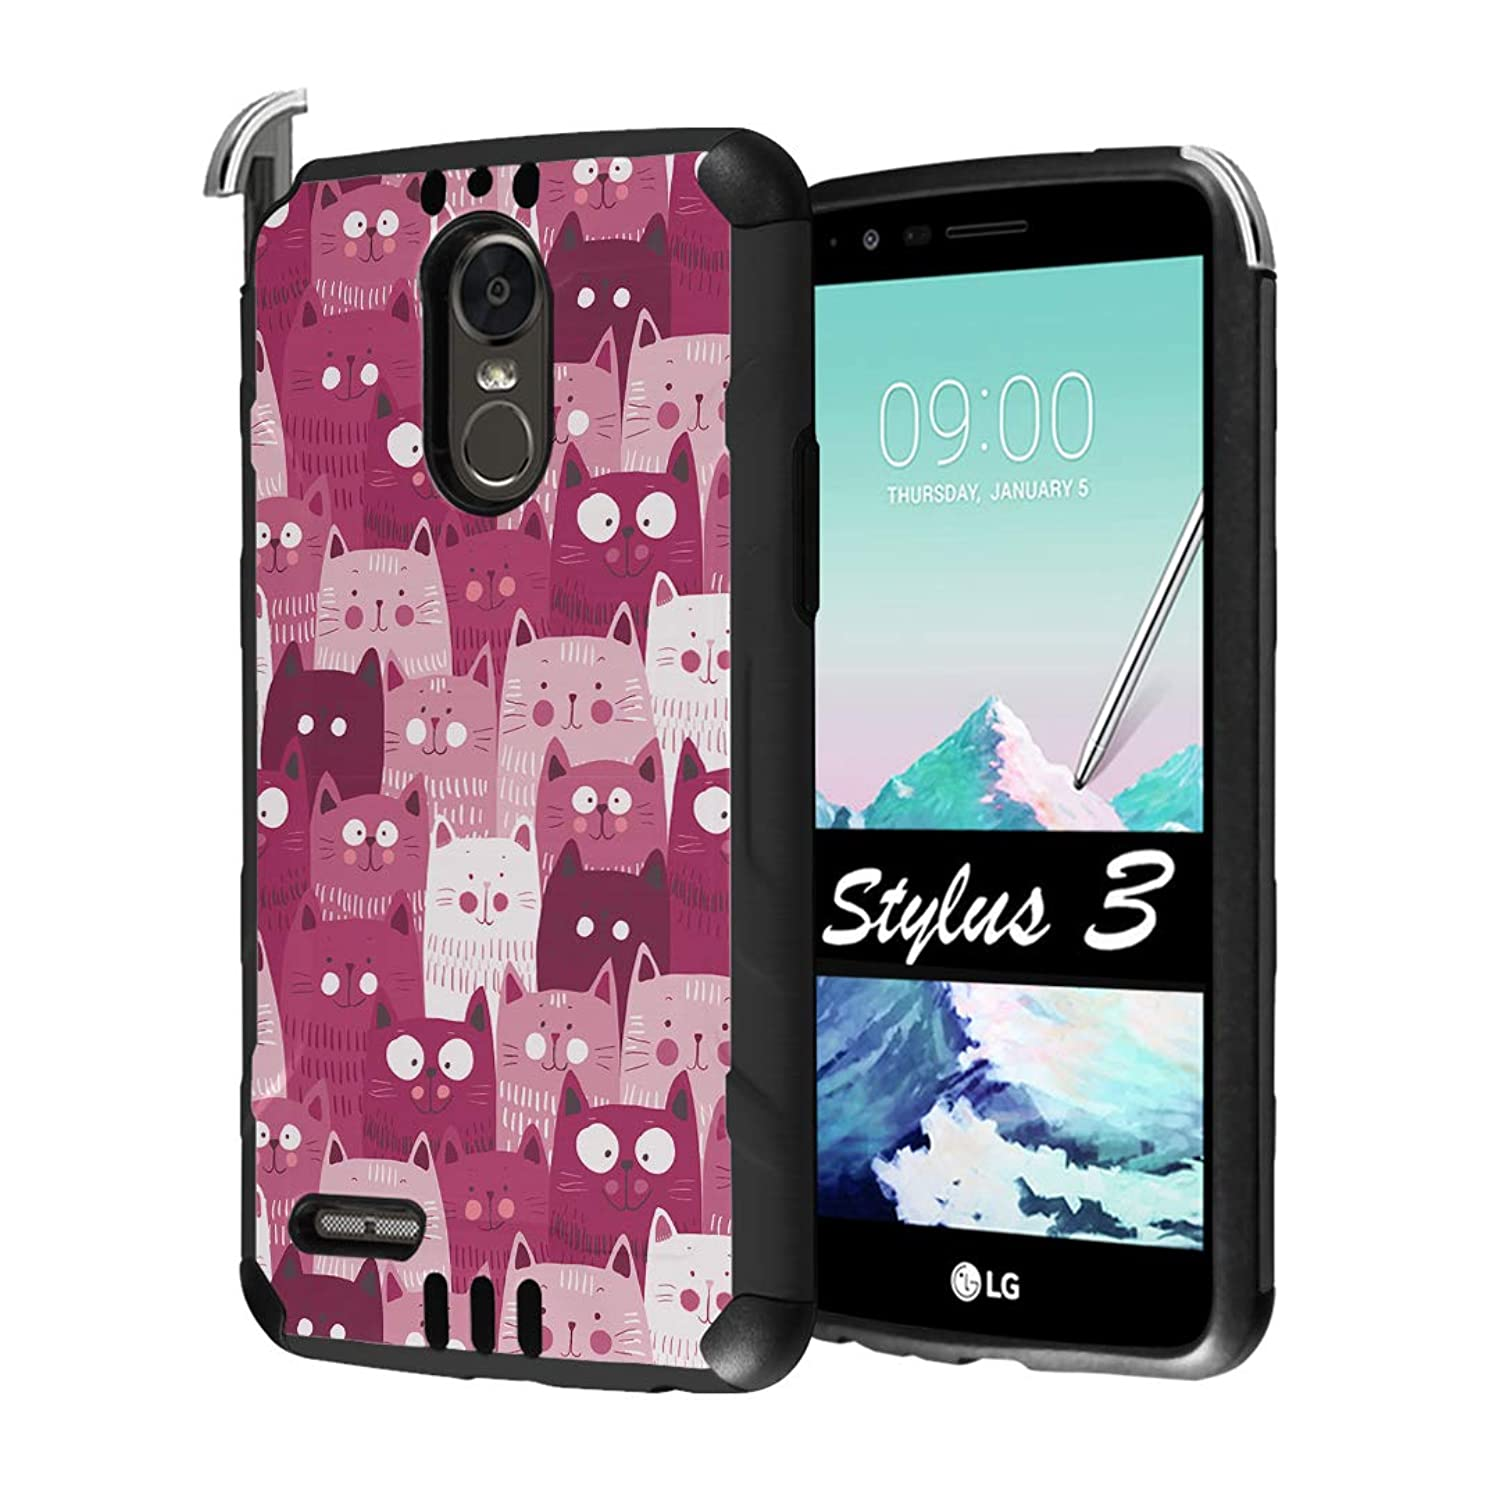 Capsule Case Compatible with LG Stylo 3, LG Stylo 3 Plus [Hybrid Dual Layer Supports Qi Wireless Charging Slim Defender Armor Combat Case Black] for LG Stylus 3 - (Pink Cat)